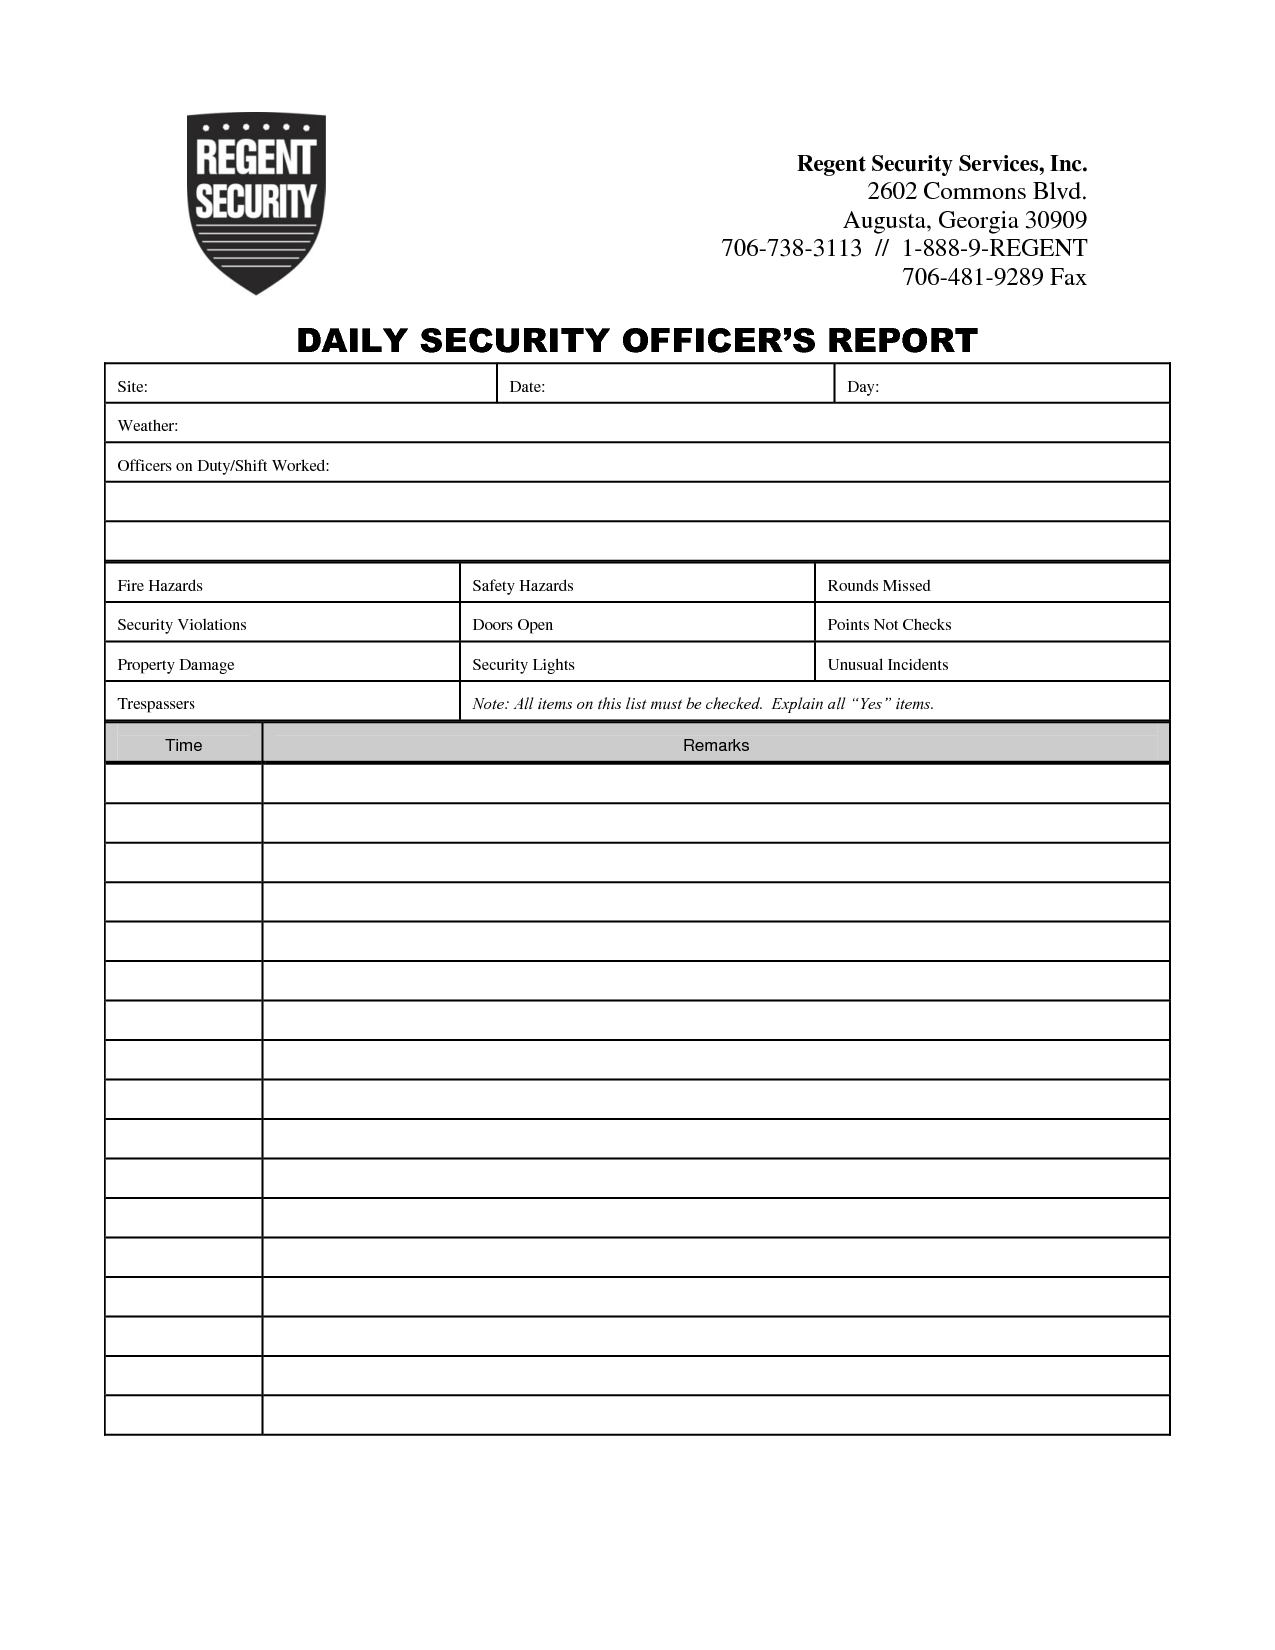 Security Guard Daily Activity Report Template